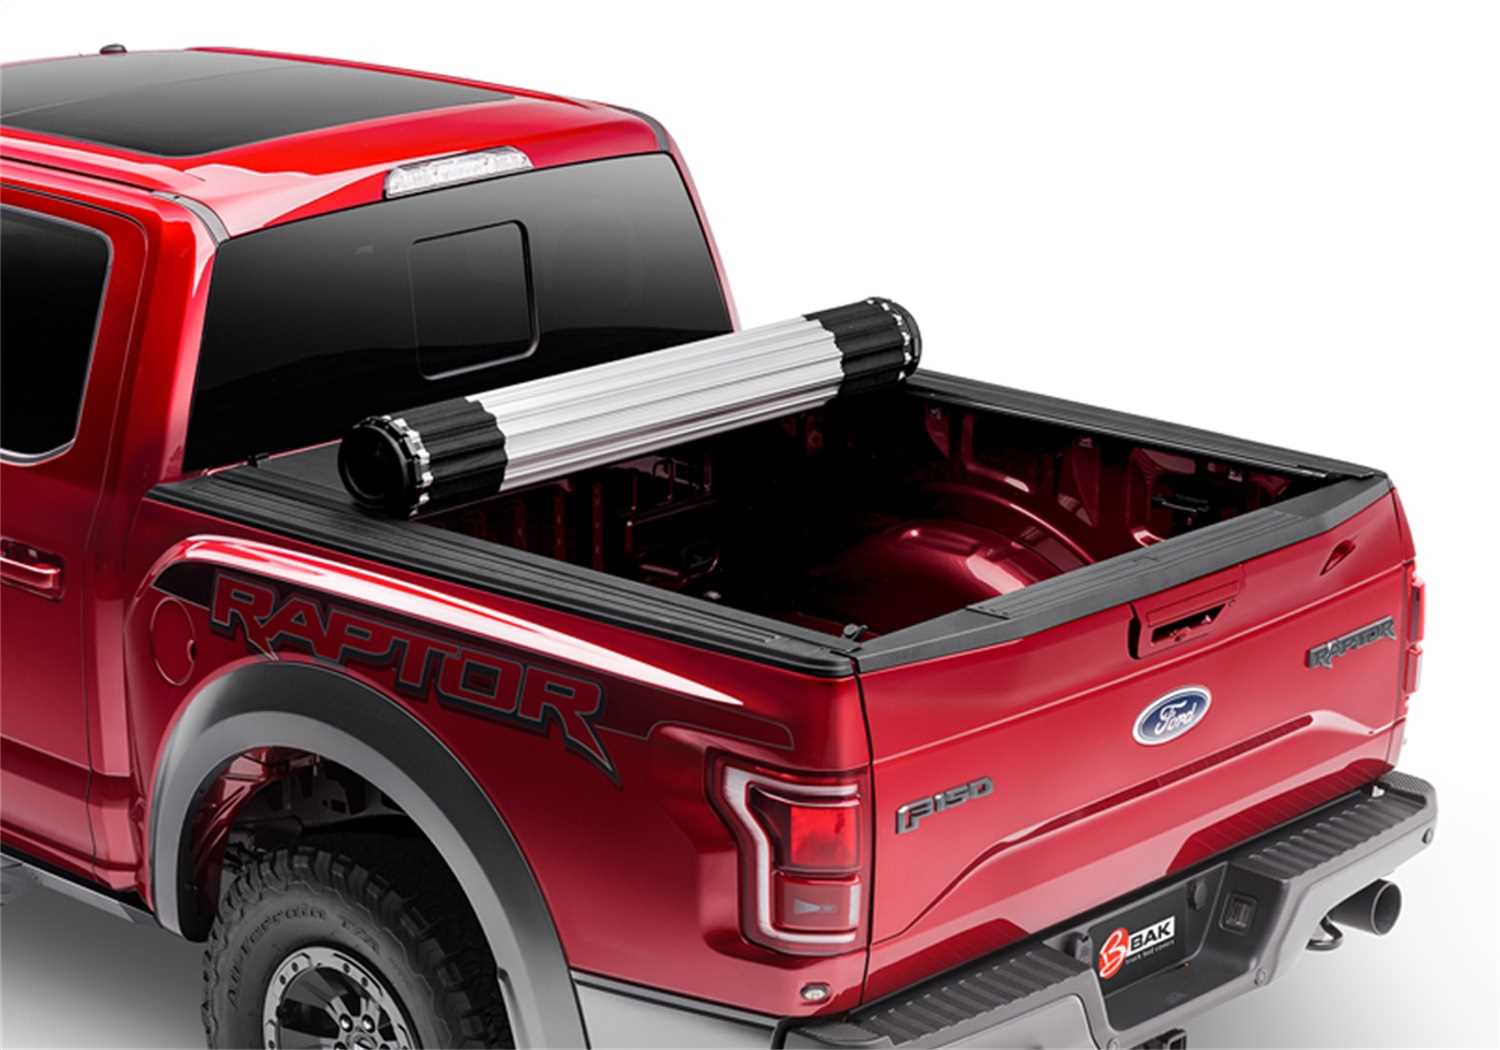 79410T Bak Industries Revolver X4 Hard Rolling Truck Bed Cover